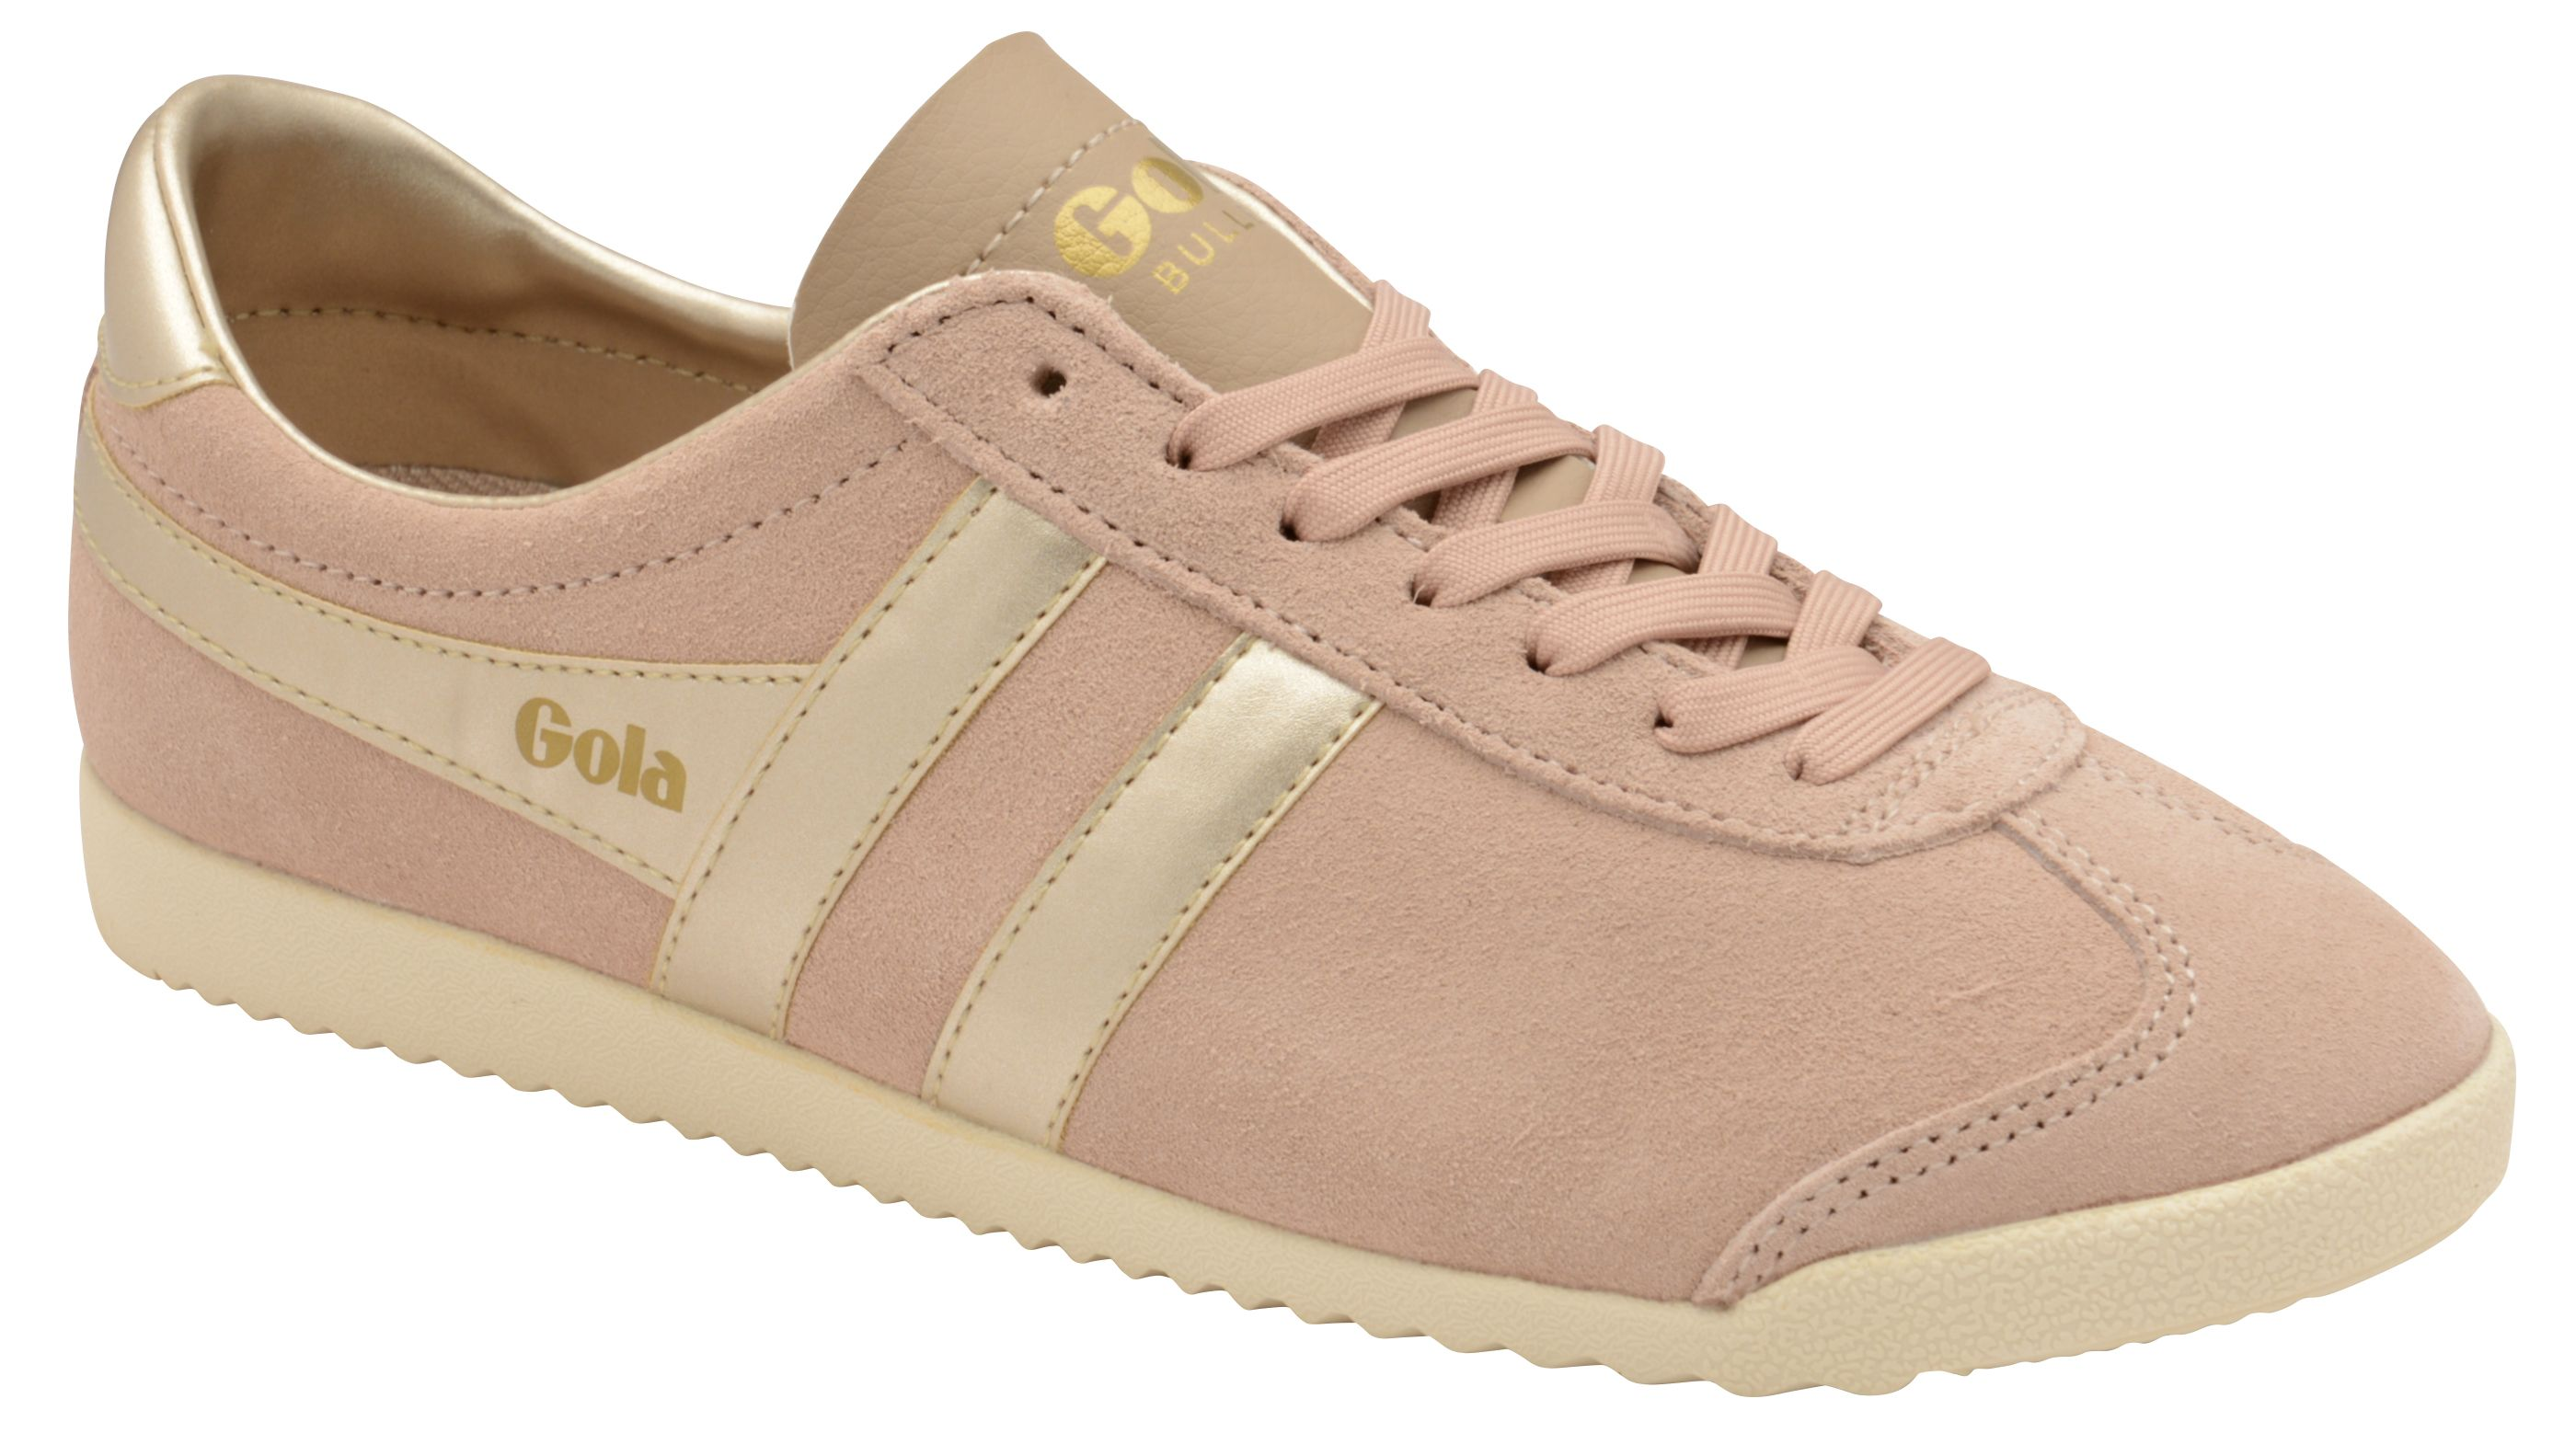 Gola Bullet Pearl Lace Up Trainers, Pink